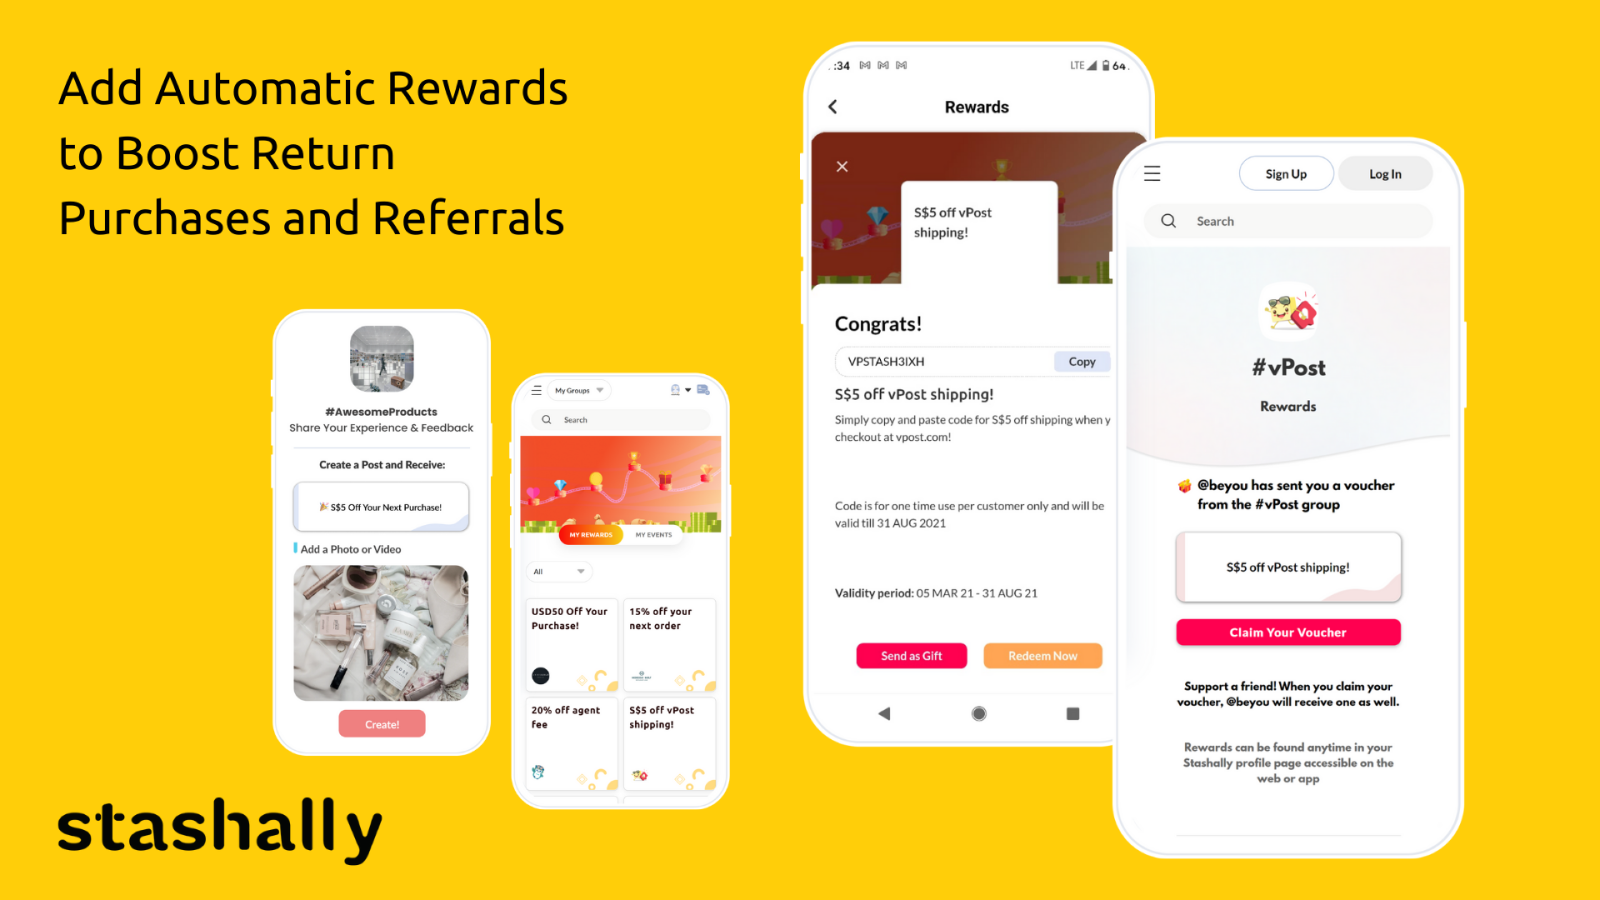 Distribute Rewards for Repeat Purchases and Referrals